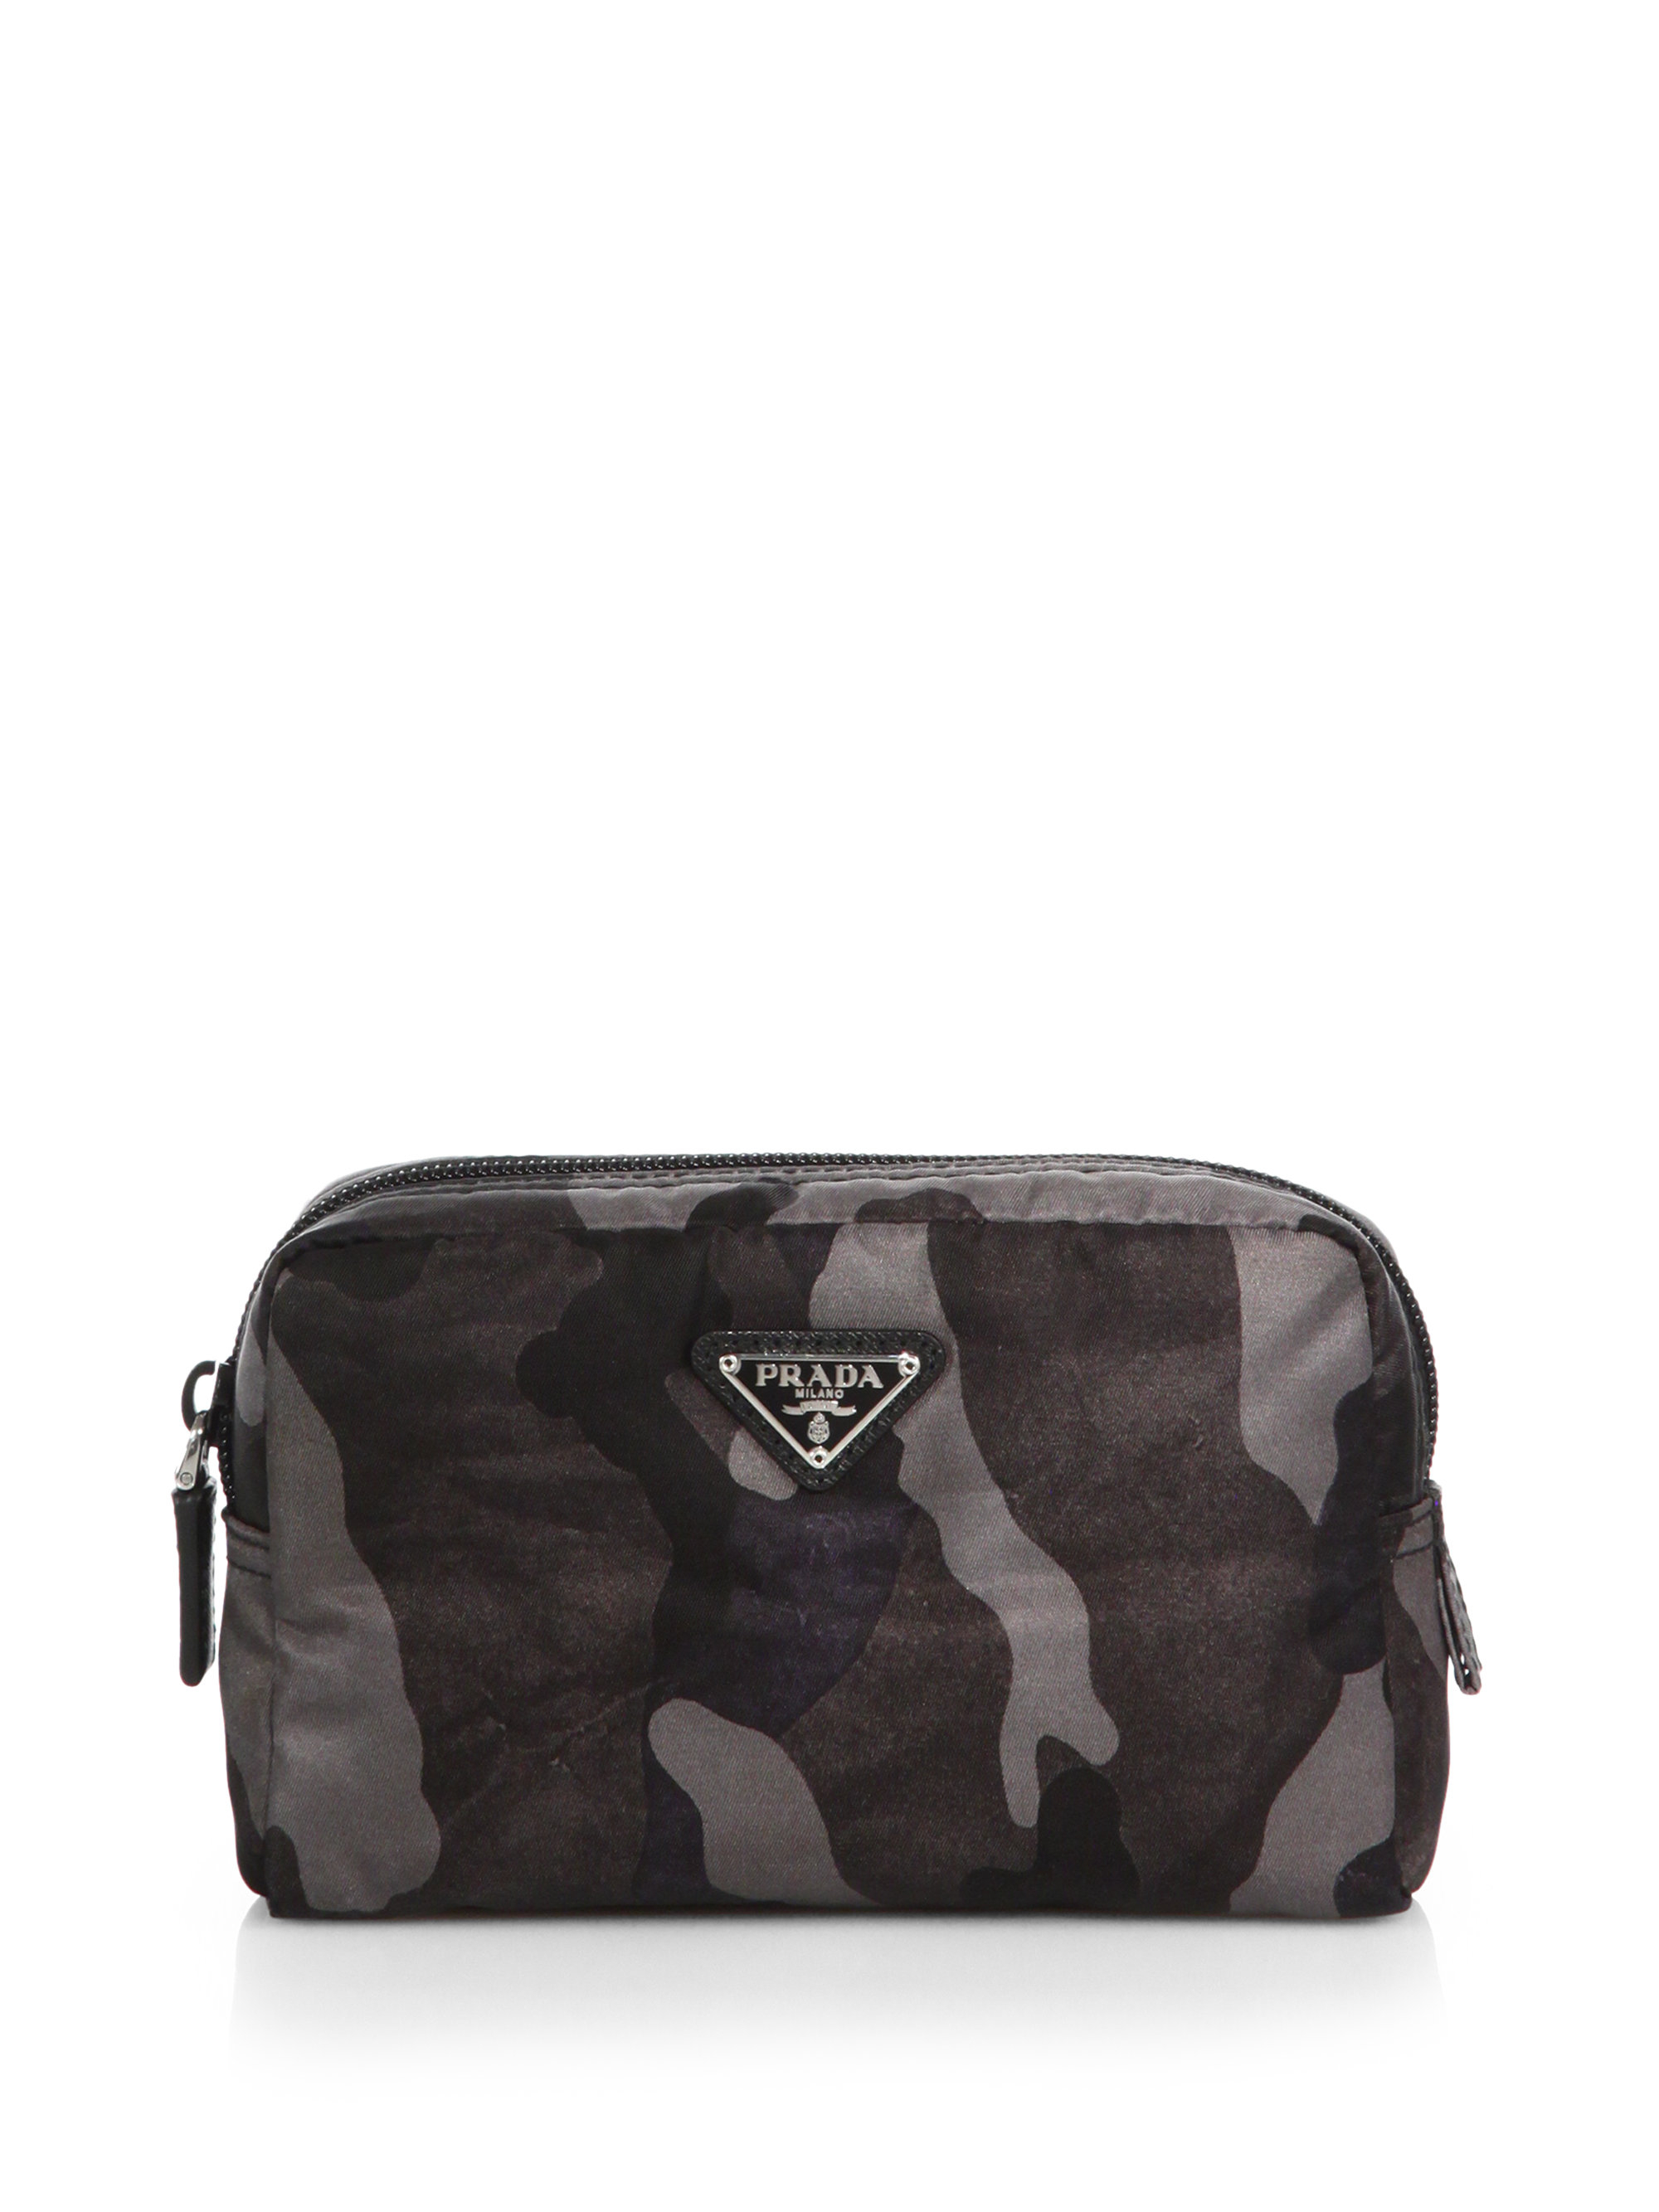 64d68ce26d Prada Transparent Totes And Satchels. Prada Tessuto Camouflage Small  Cosmetic Case in Gray for Men (FUMO .